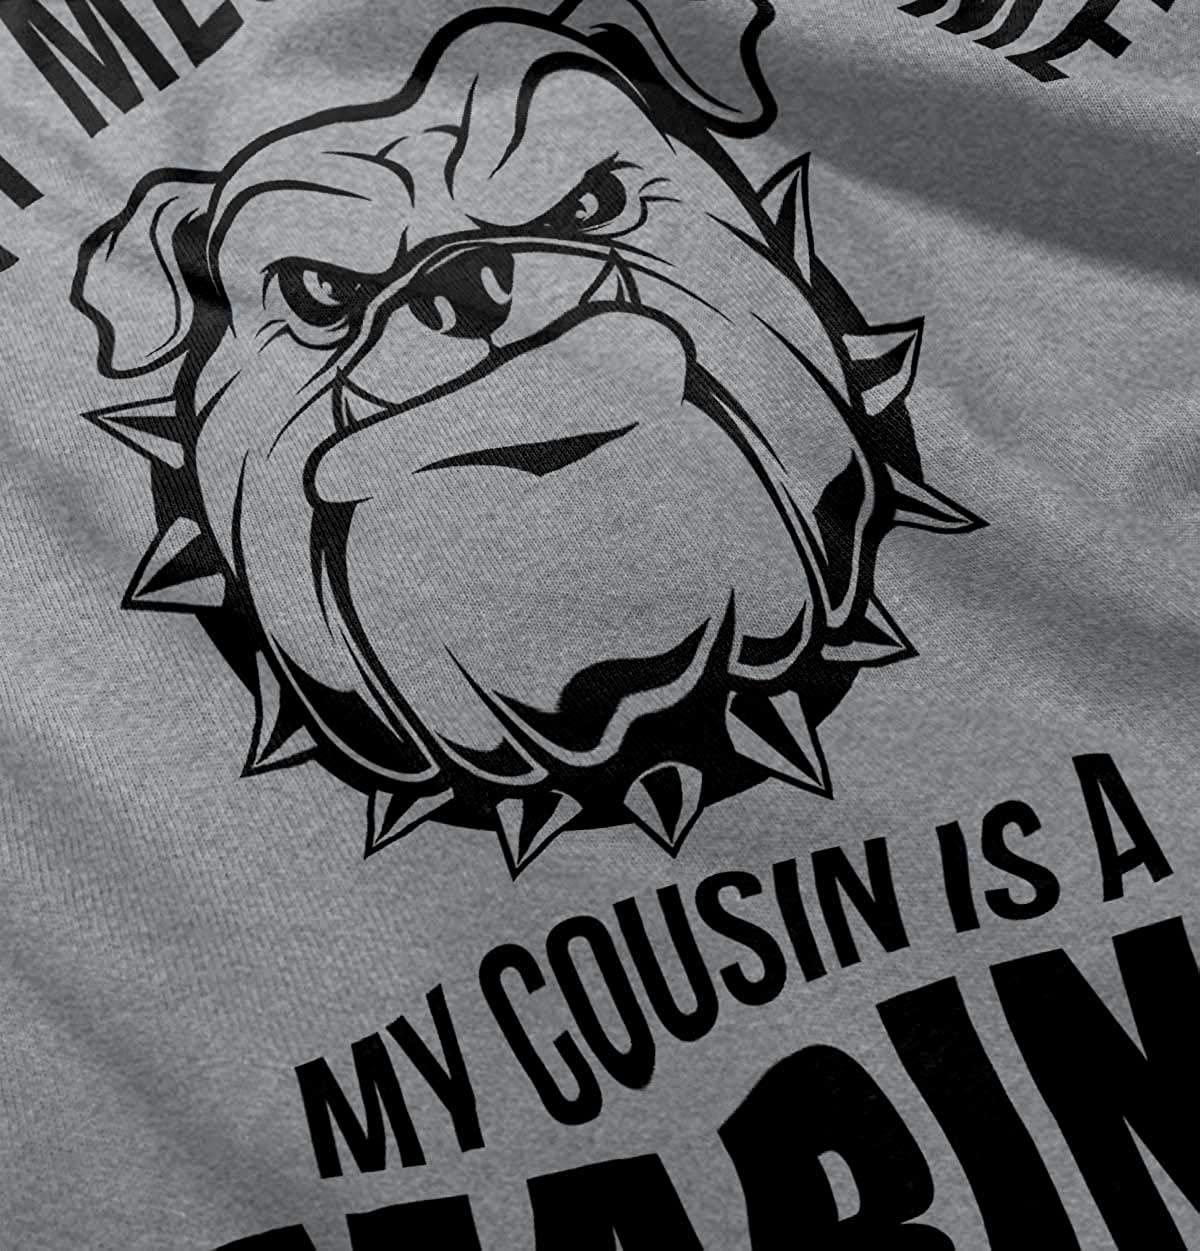 c5871dd7051 Amazon.com  Dont Mess with Me Cousin A Marine Military Infant Toddler T  Shirt  Clothing